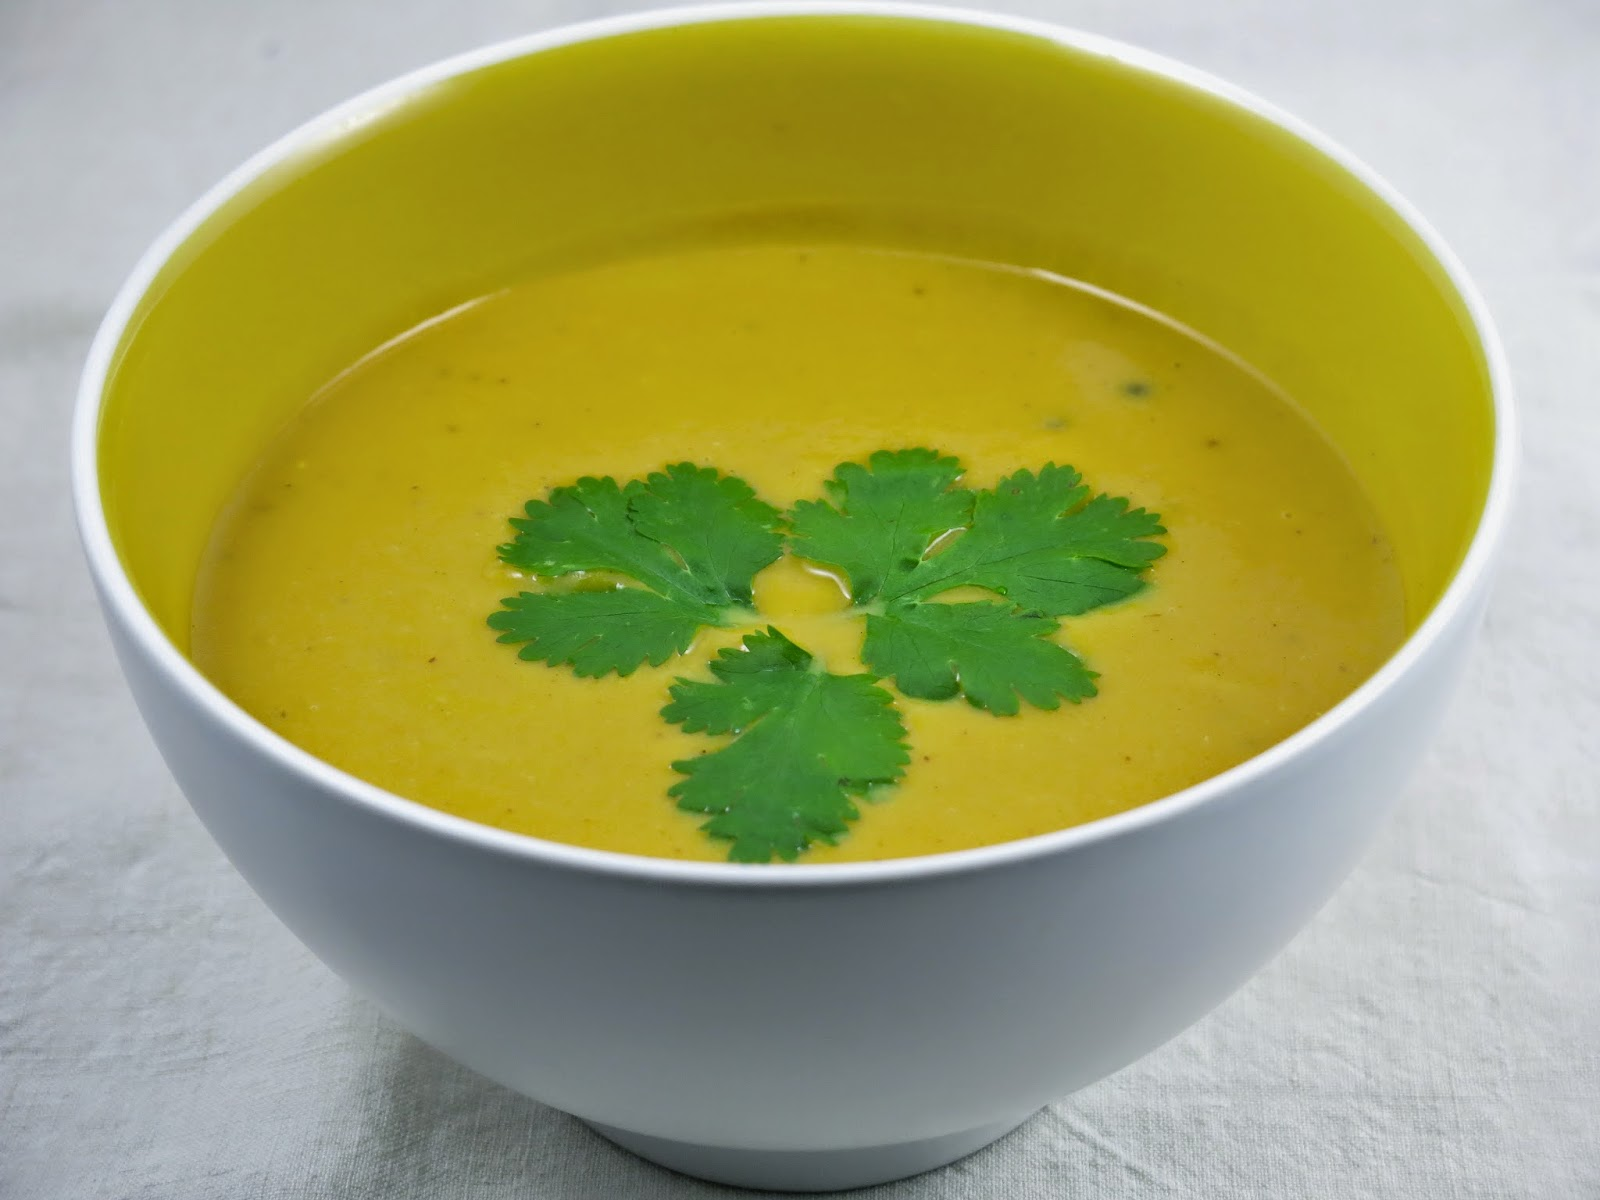 http://carrotcake.fr/fr/recipes/potage-aux-patates-douces